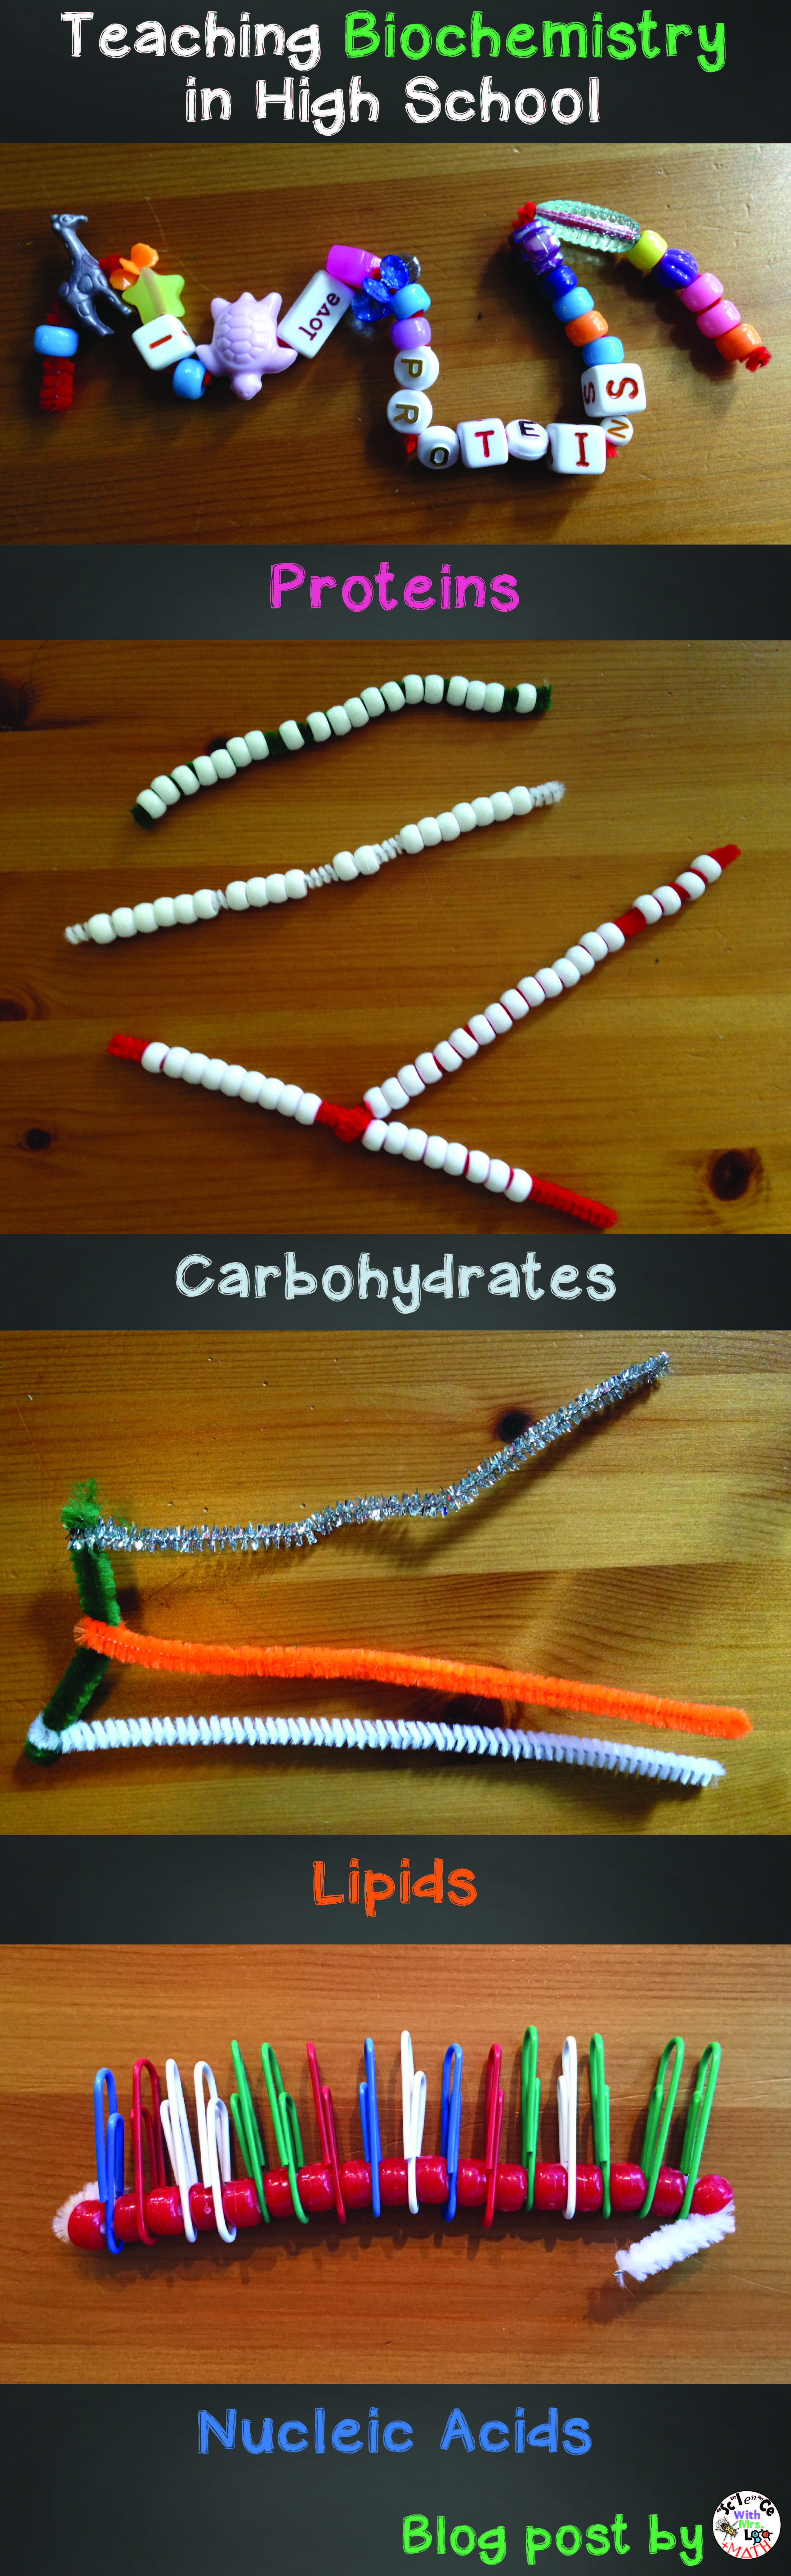 Molecular Models Science Teachers Can Use To Show Proteins